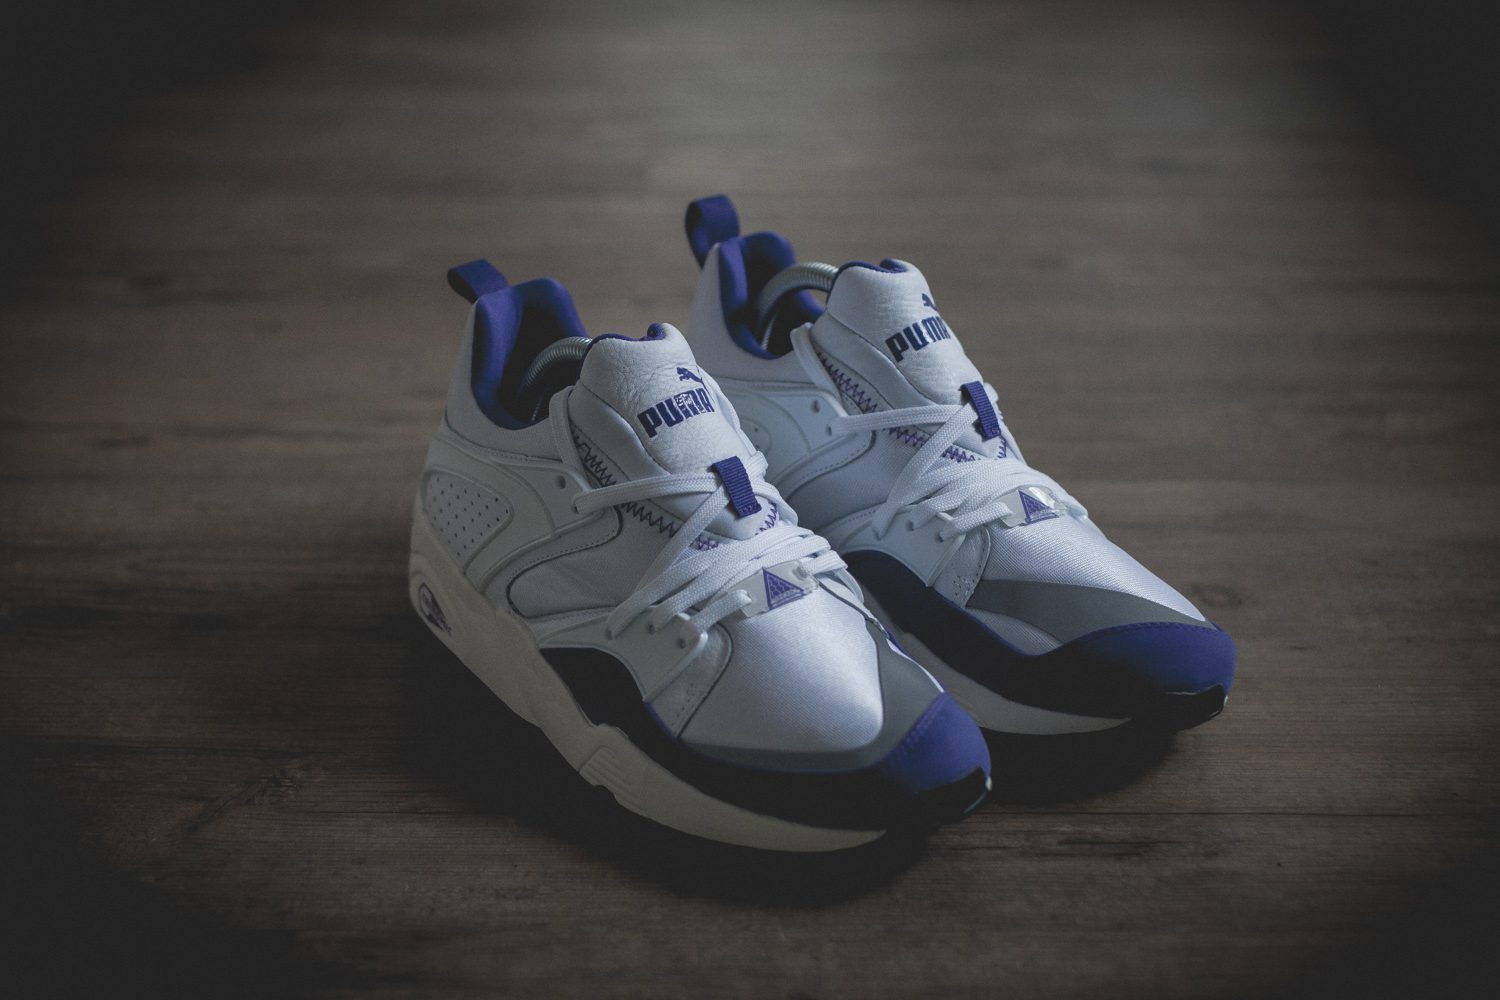 PUMA Blaze of Glory Primary Pack 2